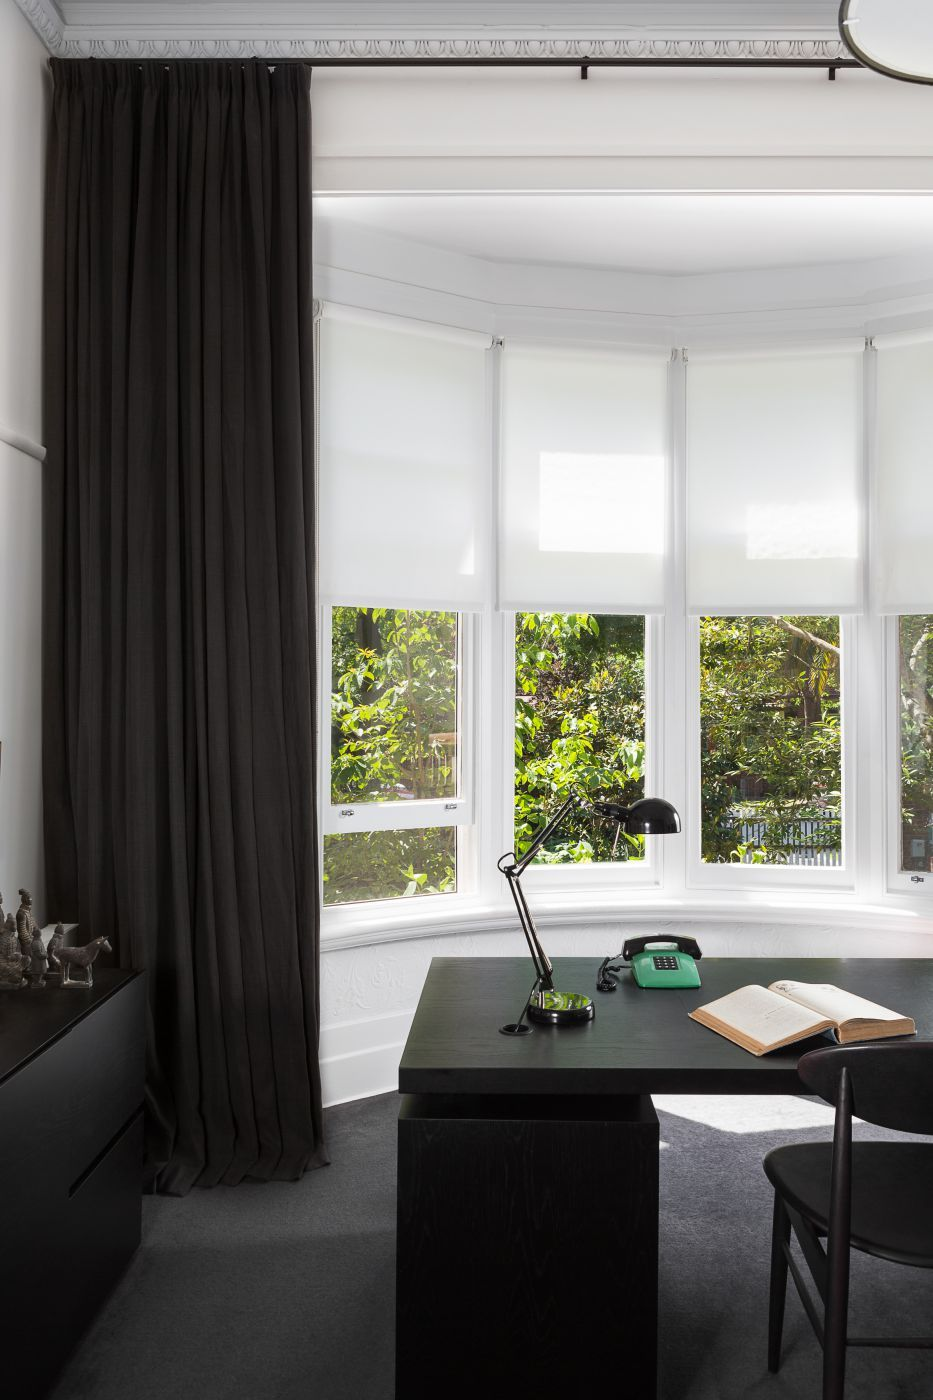 Combination Screen Roller Blinds In Bay Window To Allow